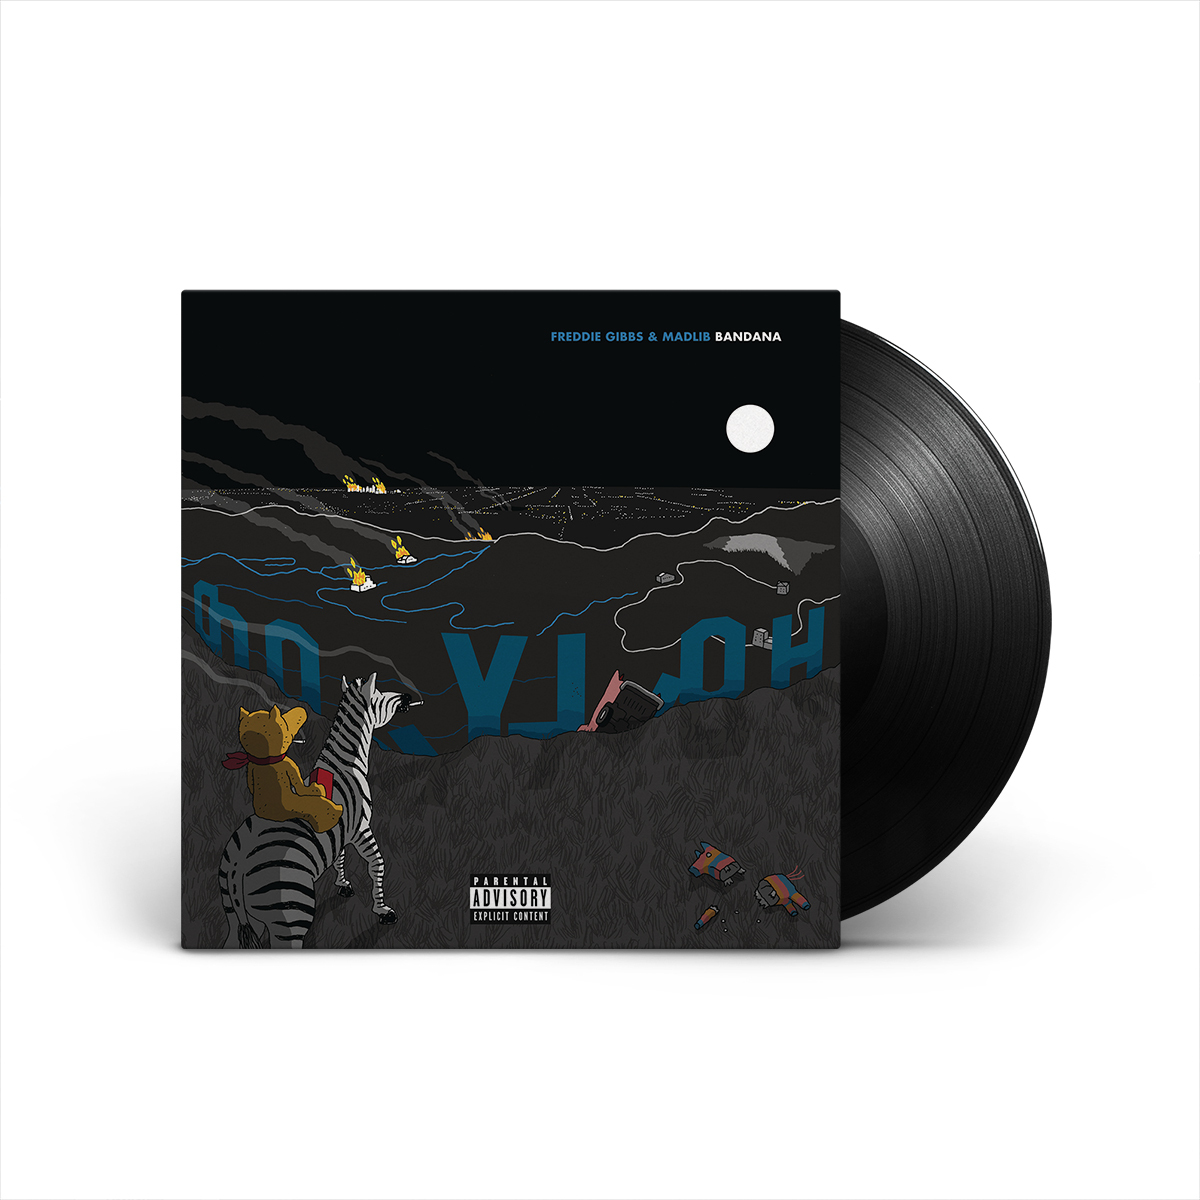 Bandana Vinyl LP + Digital Download